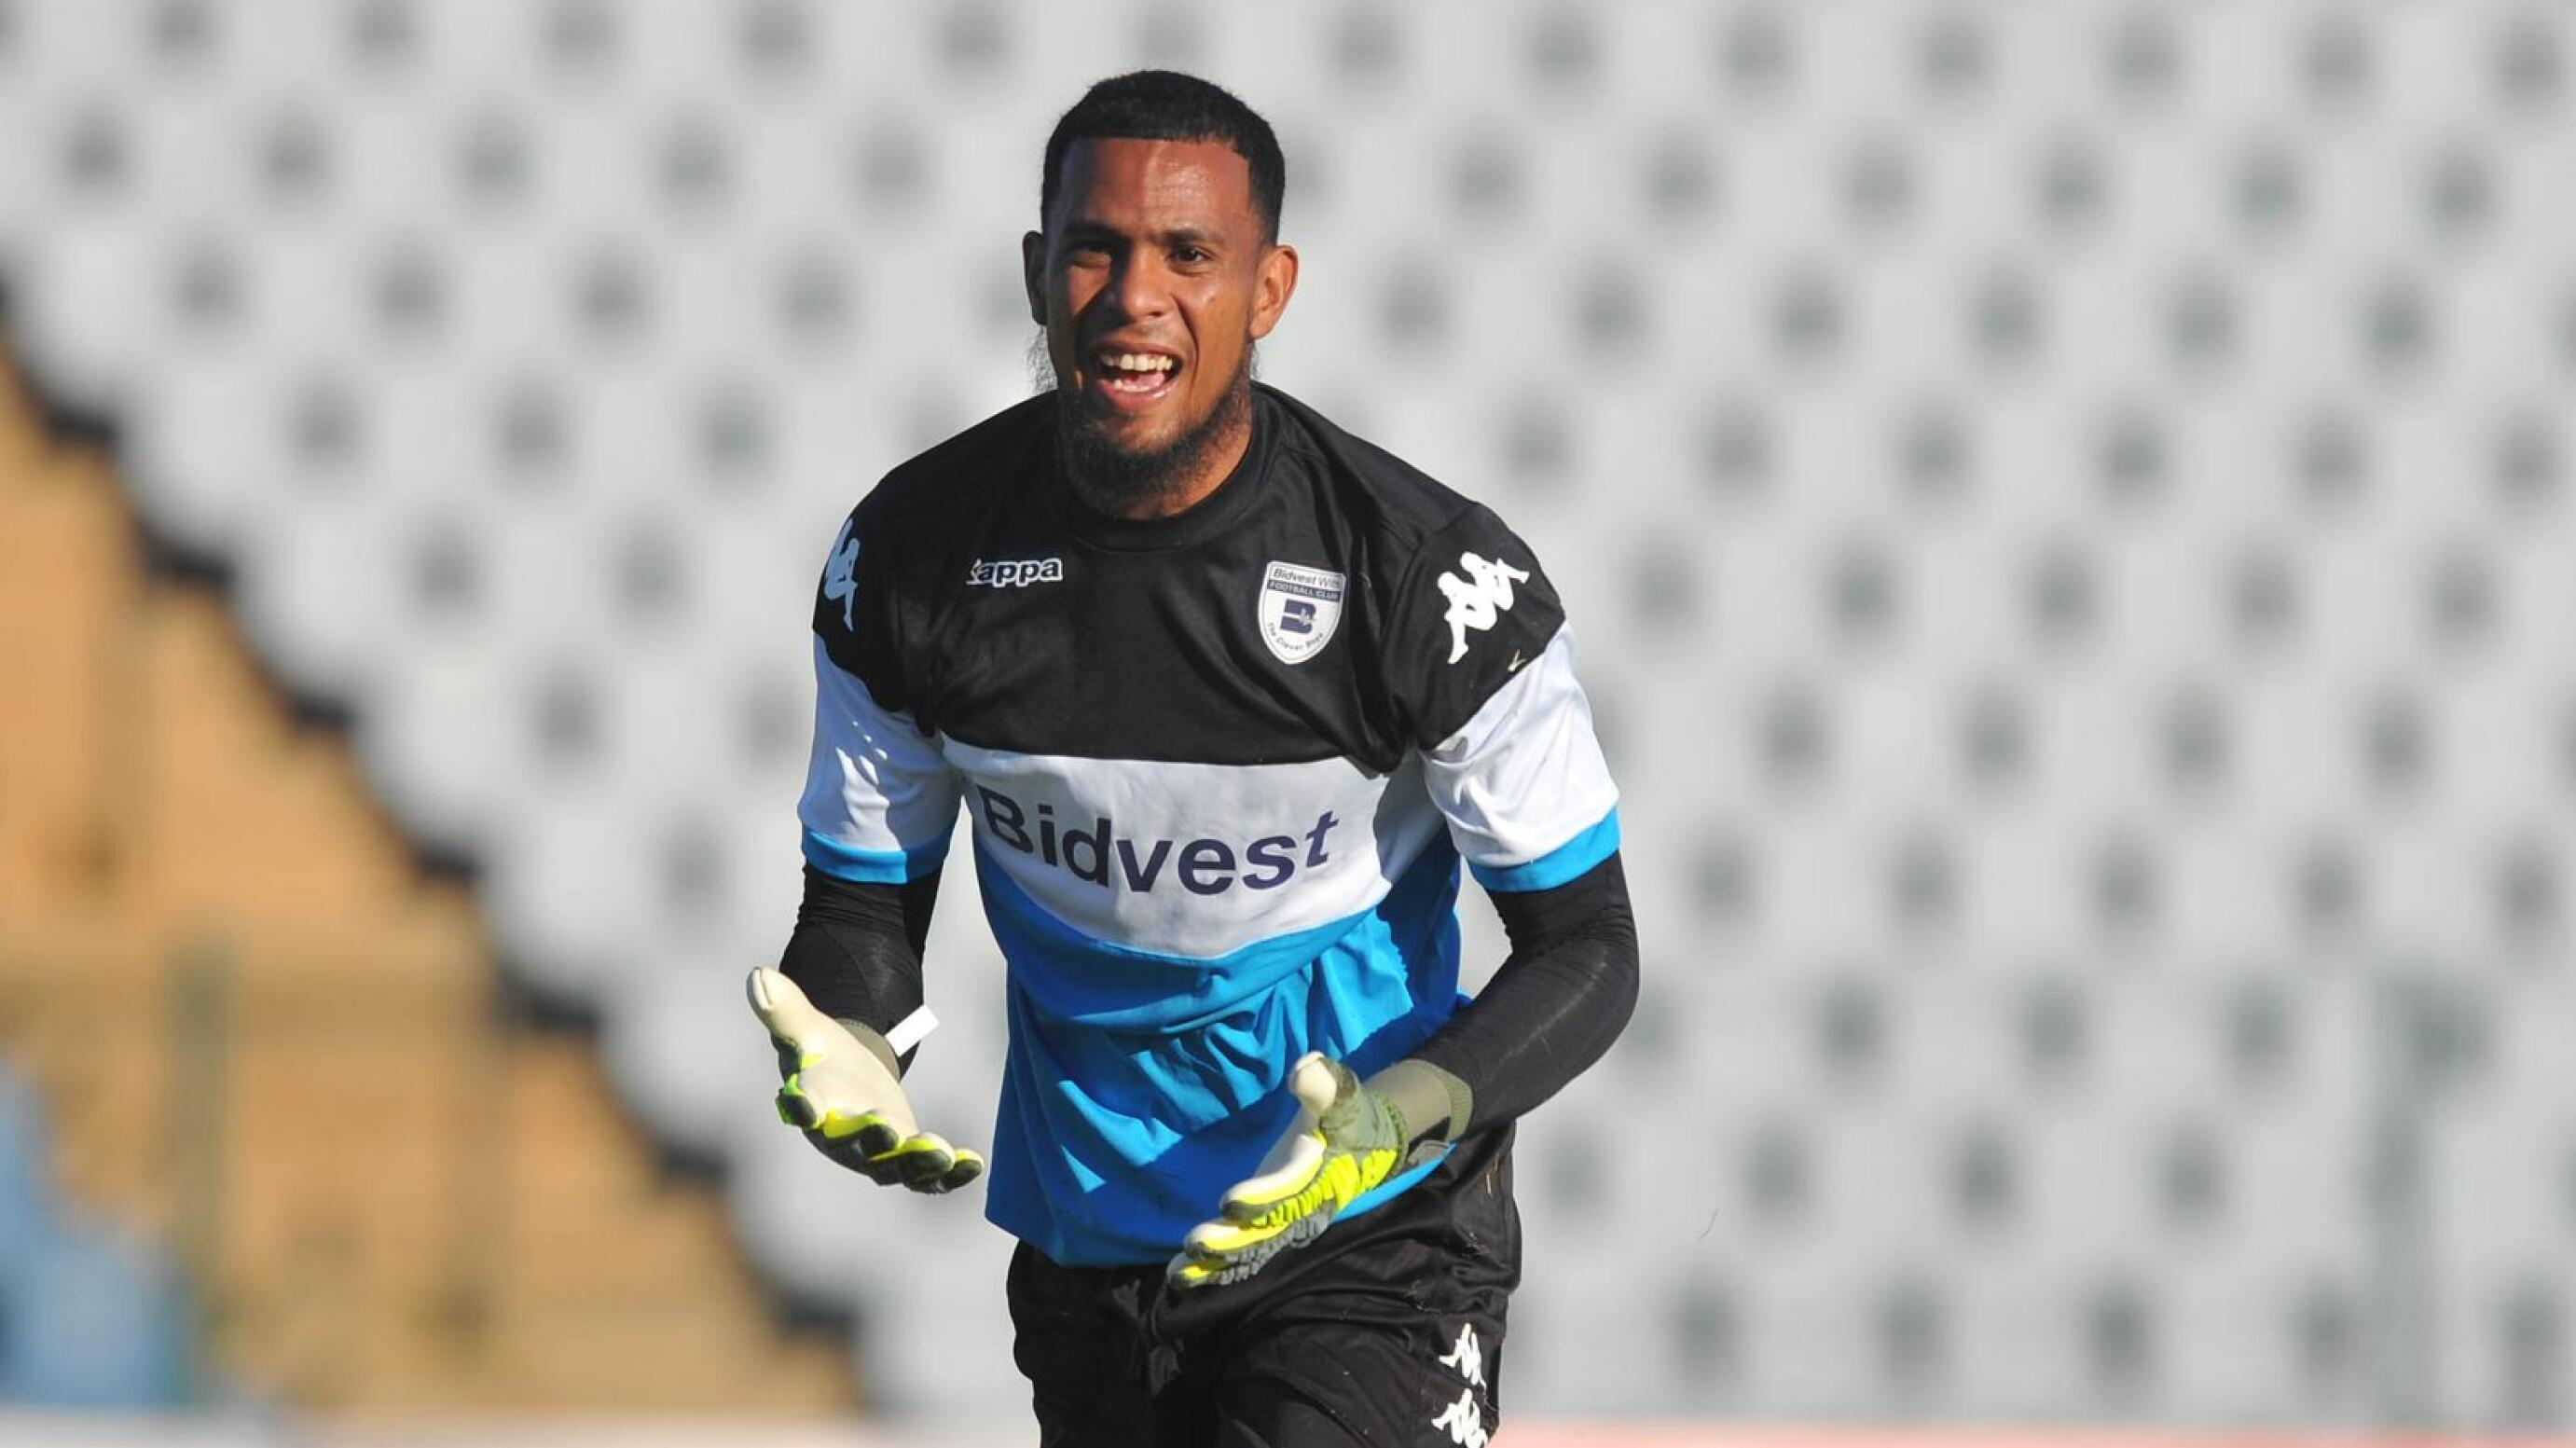 Former Bidvest Wits goalkeeper Brandon Peterson is one of a number of new signings that Kaizer Chiefs announced on Friday afternoon